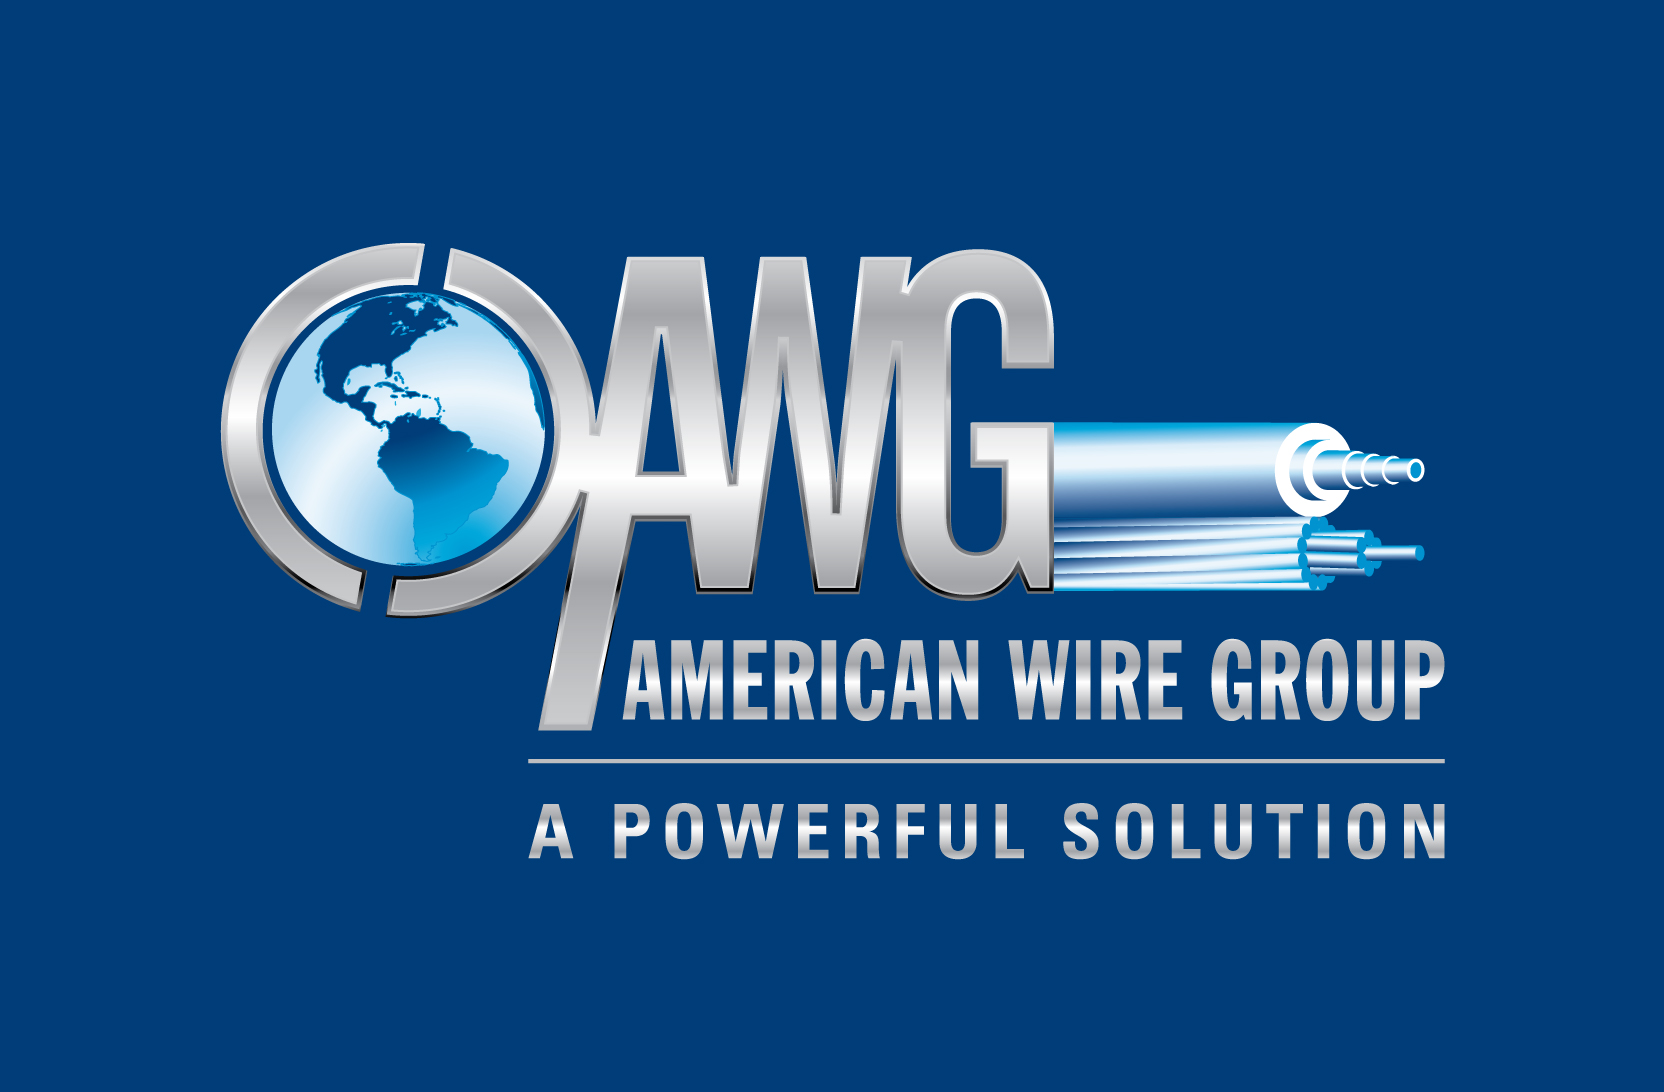 Wire & Cable Glossary On American Wire Group